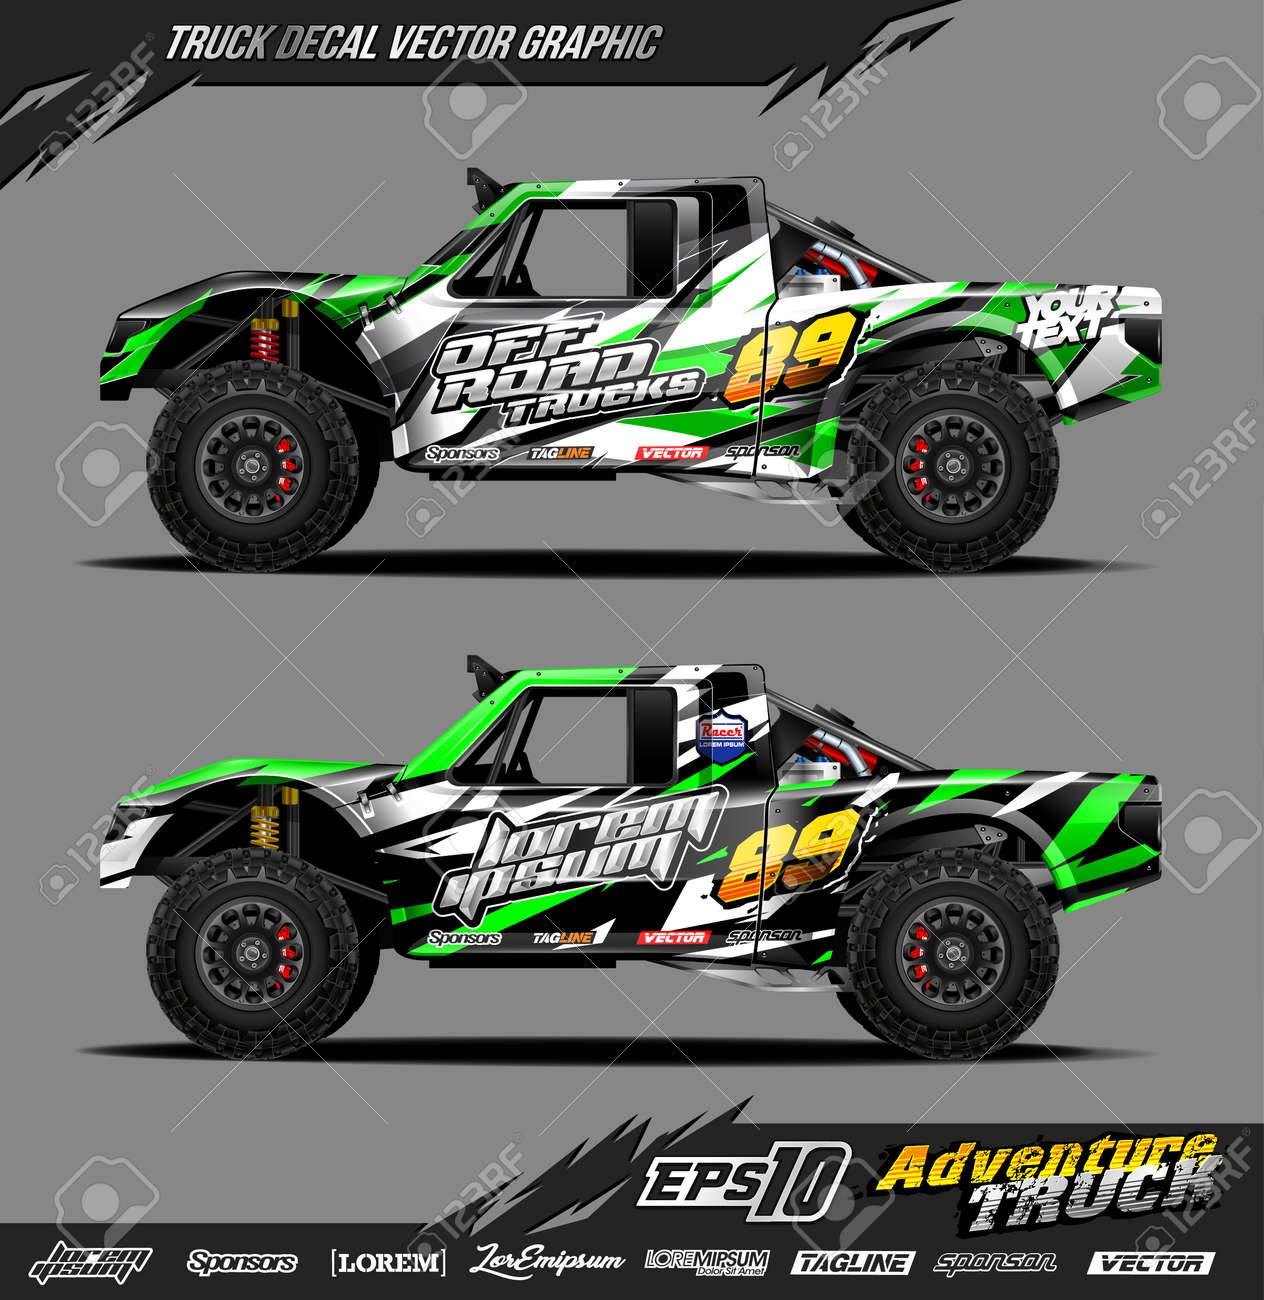 Speed off road truck decal designs - 157366455